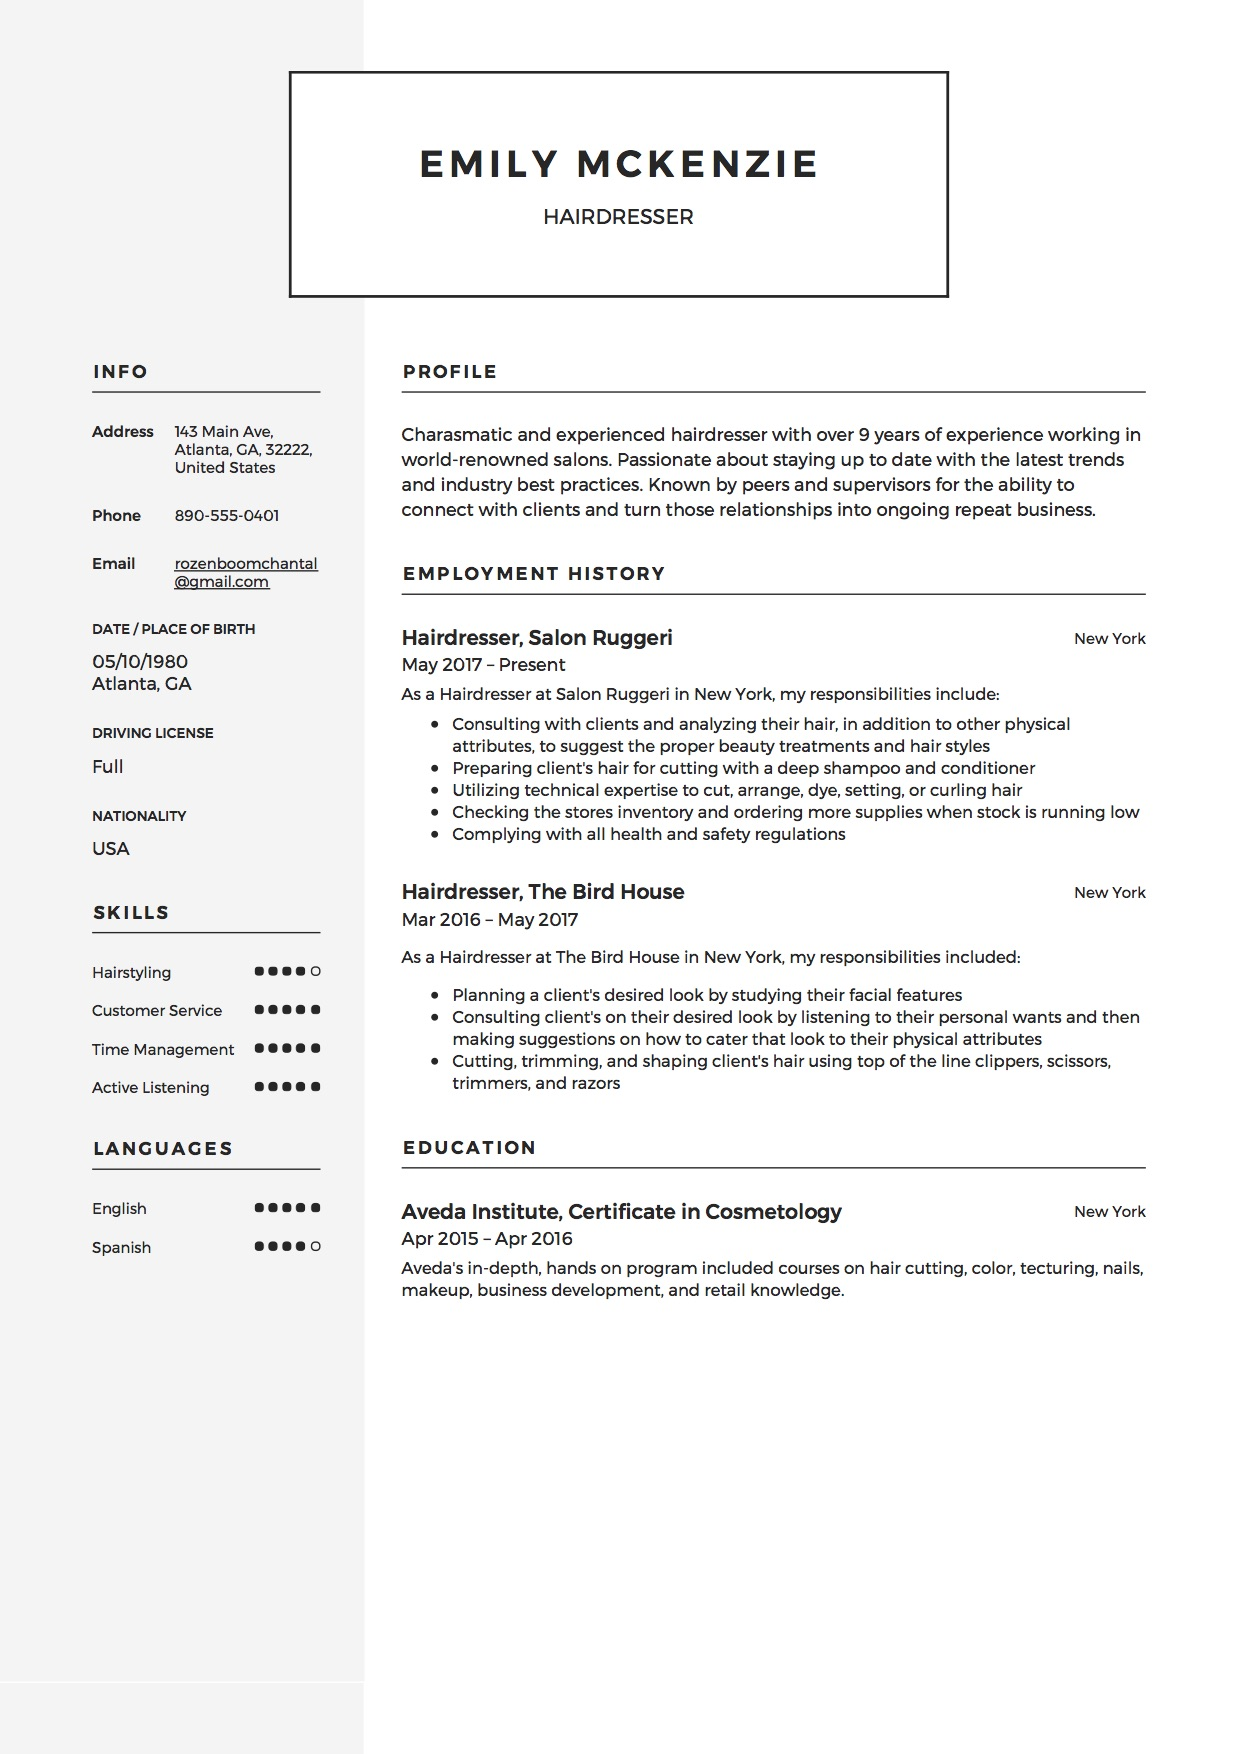 Hair Stylist Resumes 12 Free Hairdresser Resume Sample S 2018 Free Downloads